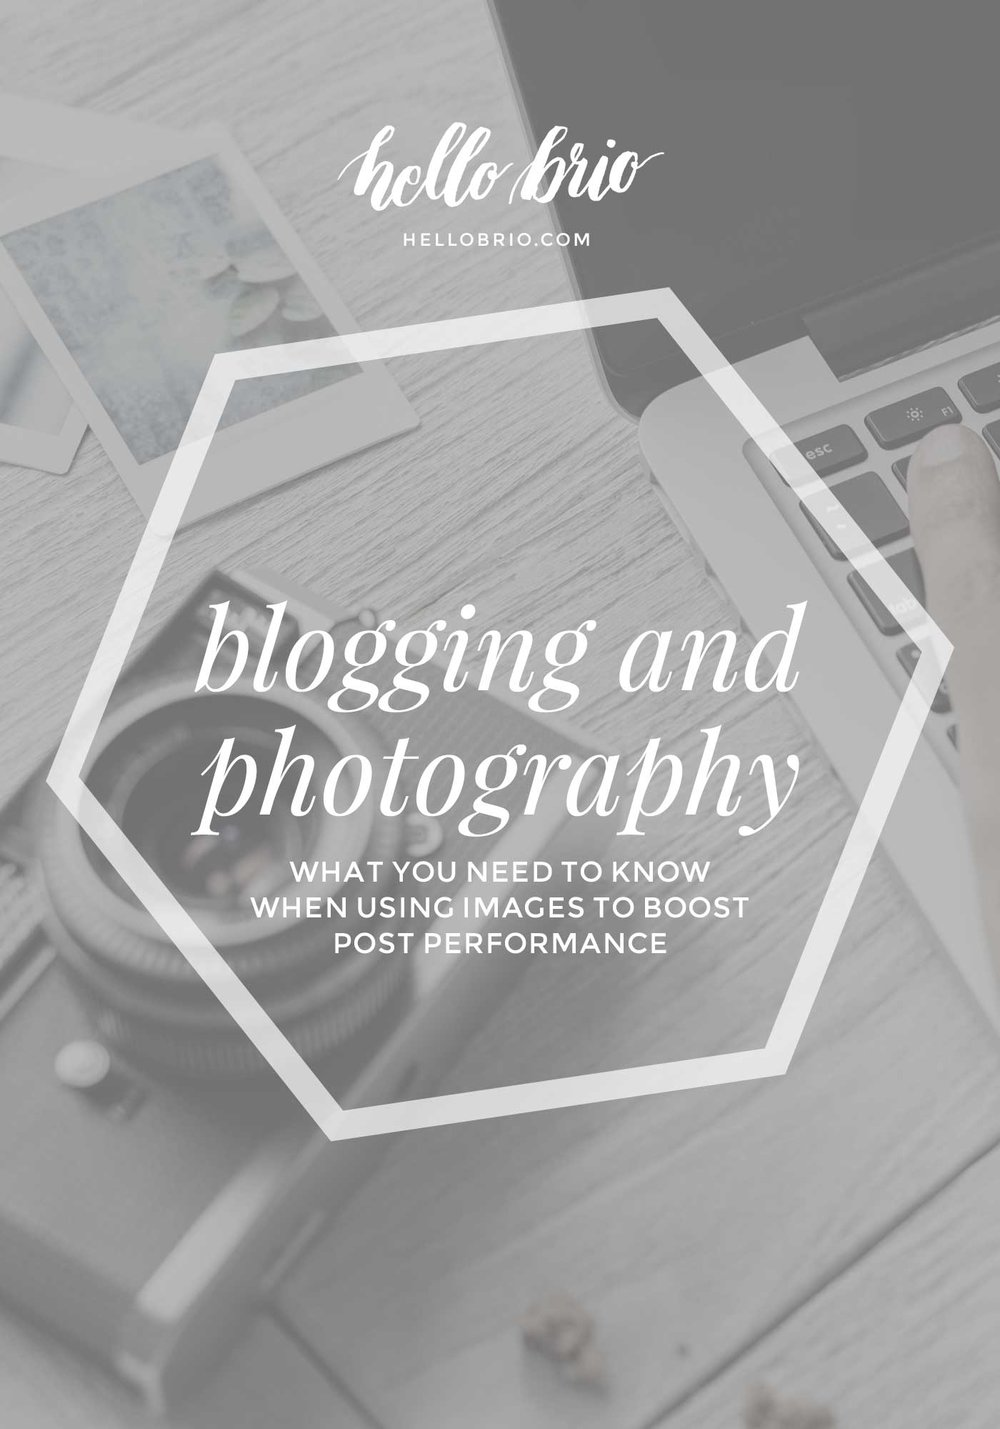 Blogging and photography tips: What you need to know when using images to boost post performance